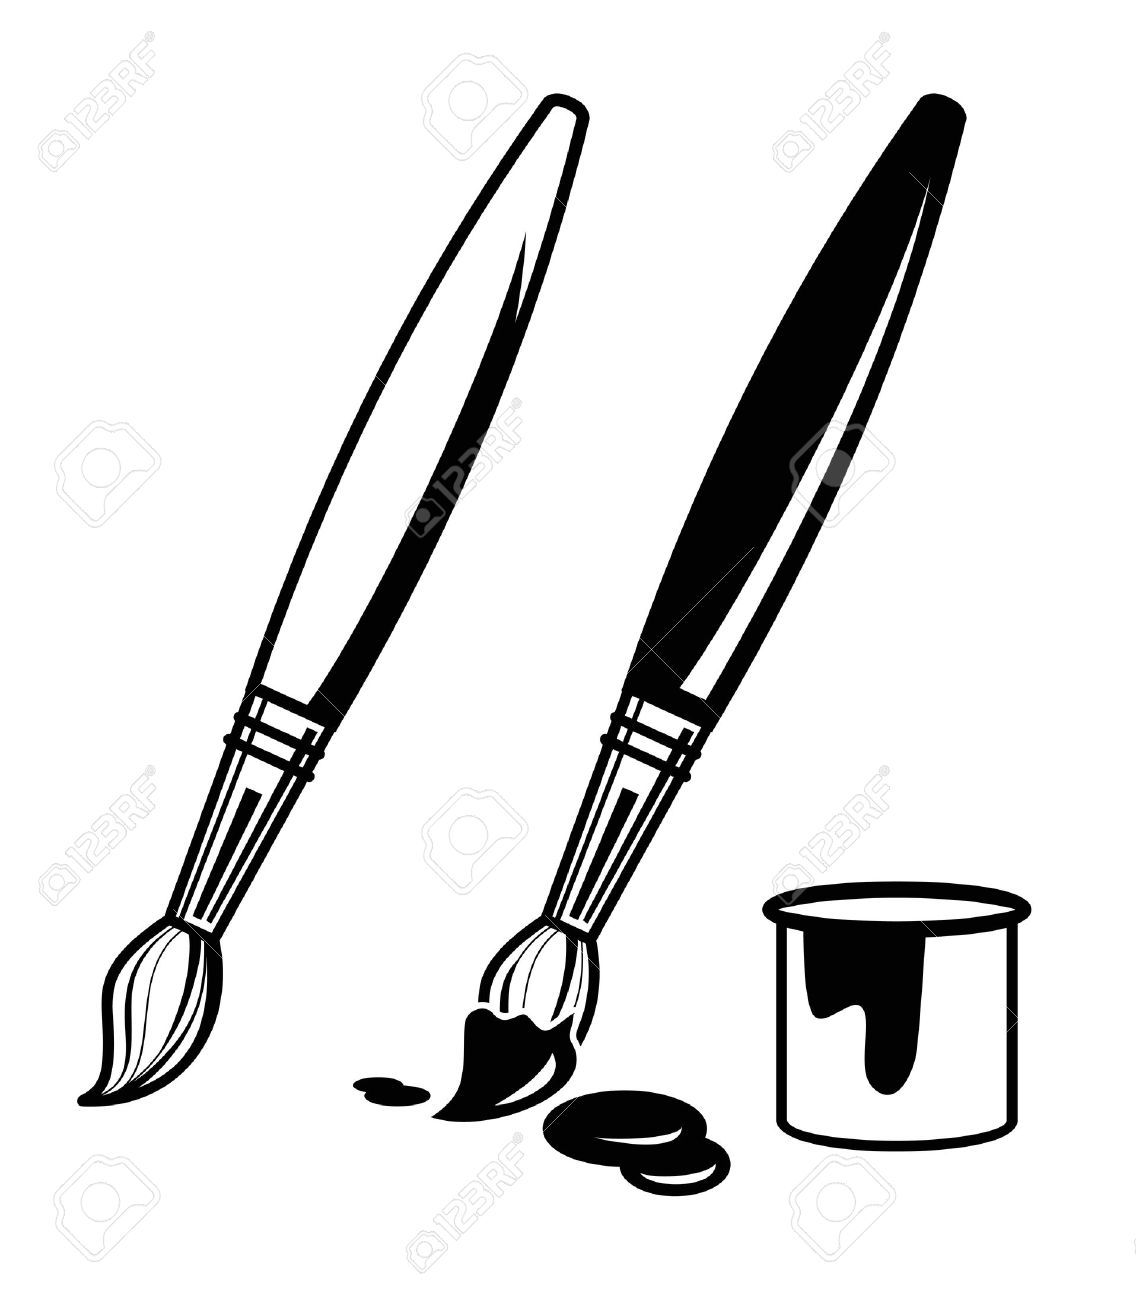 vector black paint brush icon on white background.